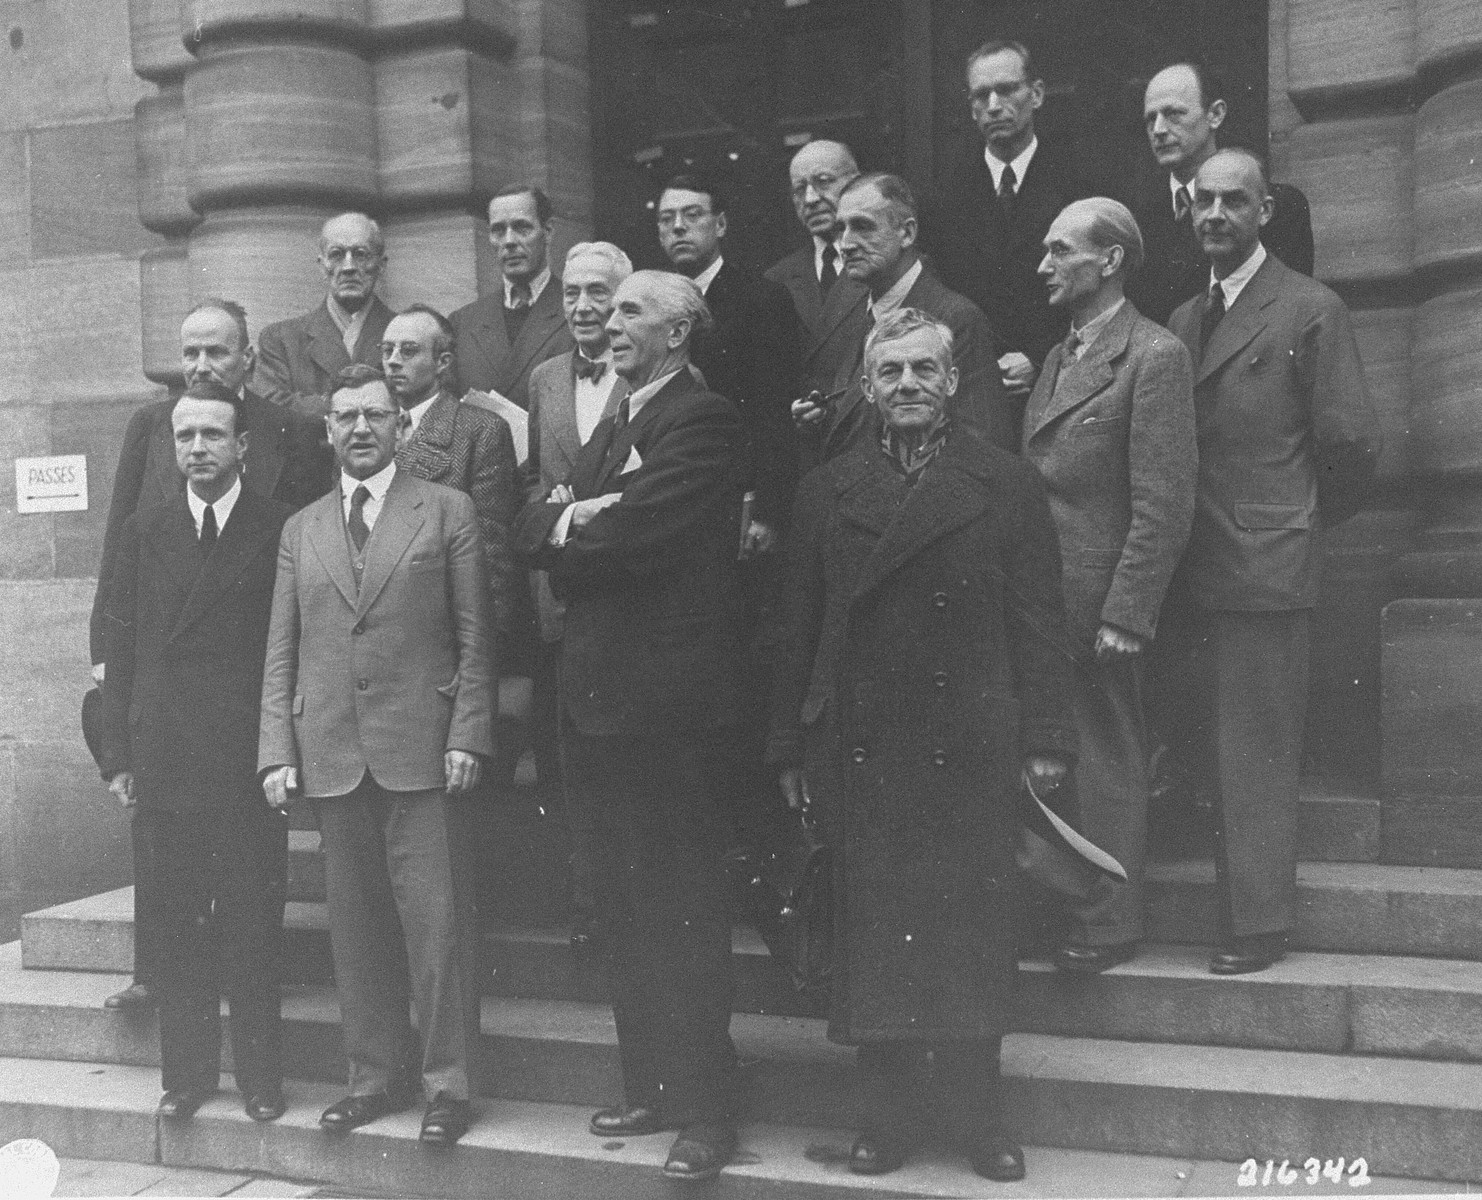 The lawyers for the defense pose before the beginning of the International Military Tribunal trial of war criminals at Nuremberg.